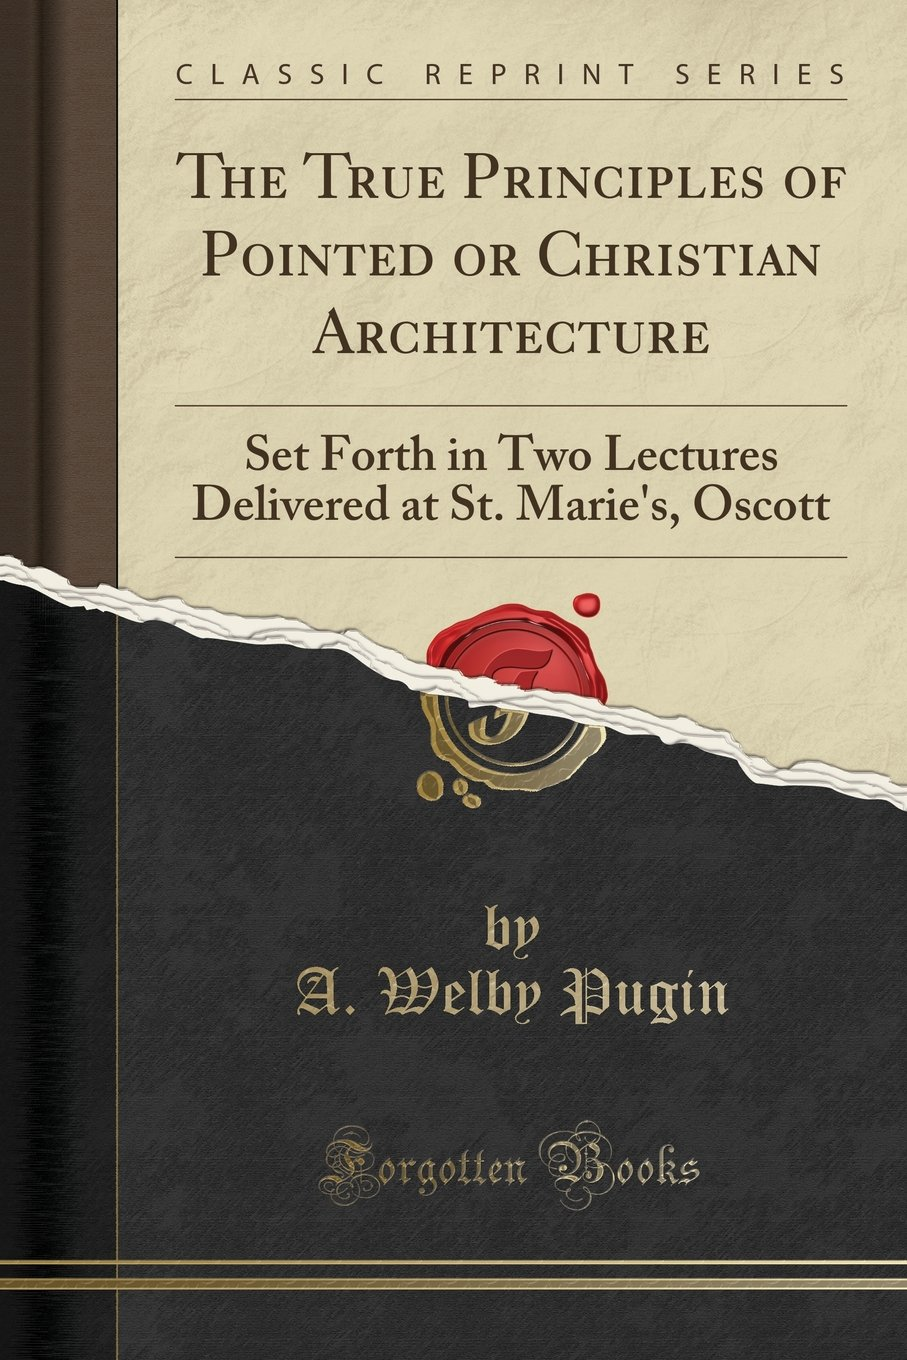 Read Online The True Principles of Pointed or Christian Architecture: Set Forth in Two Lectures Delivered at St. Marie's, Oscott (Classic Reprint) ebook